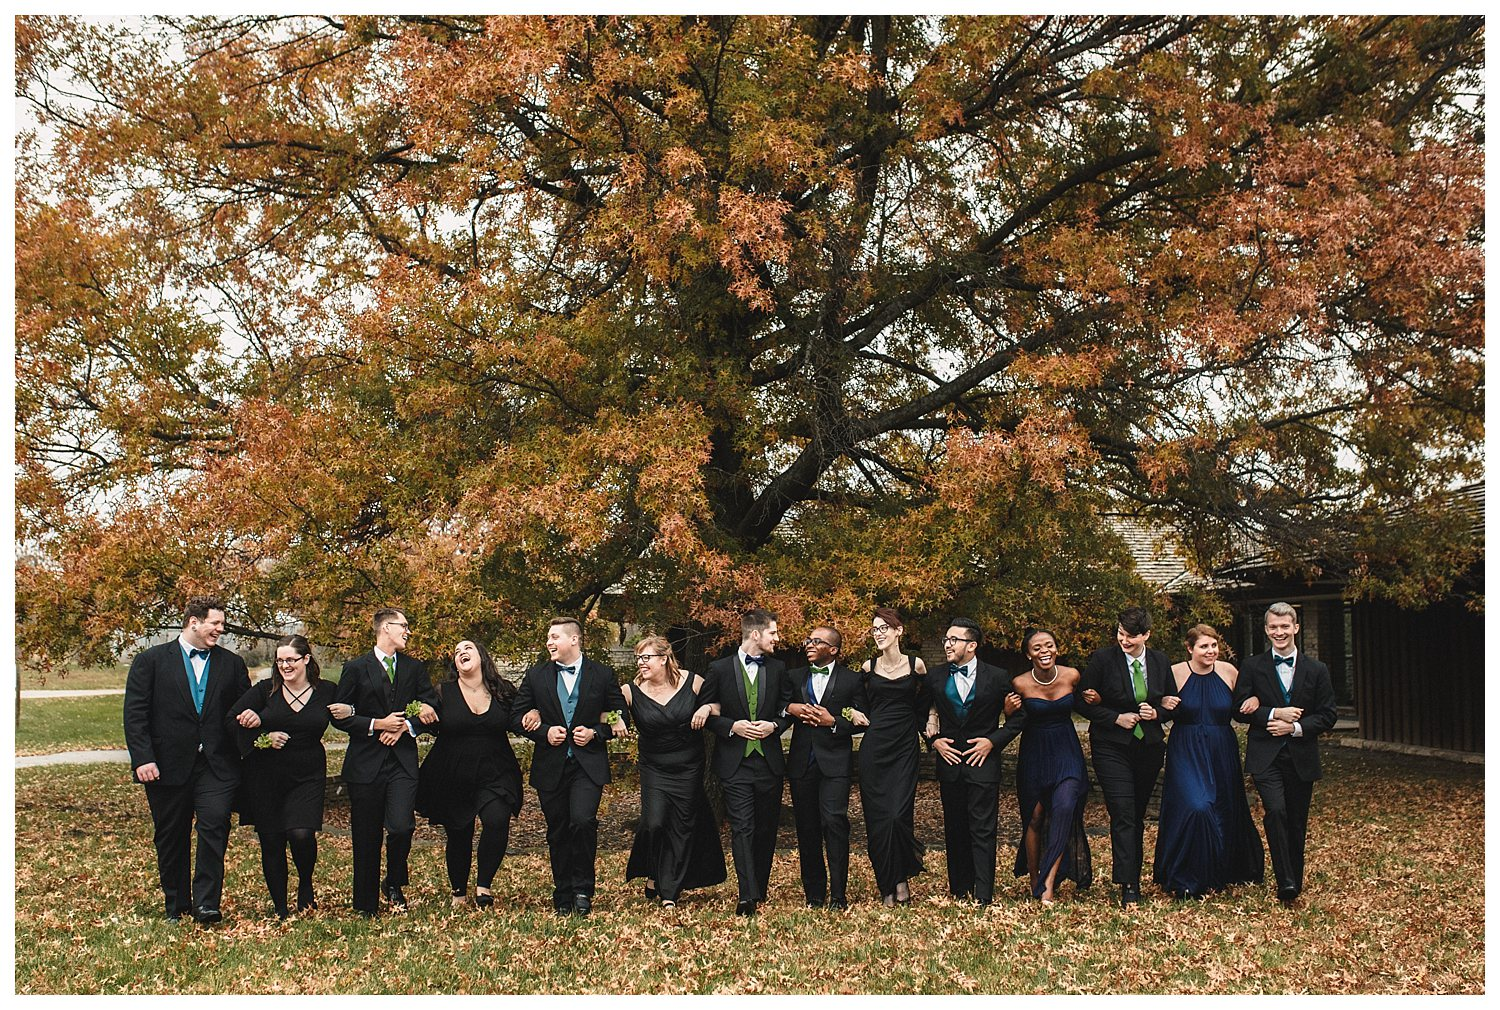 Kelsey_Diane_Photography_Loose_Mansion_Wedding_Photography_Kansas_City_Victor_Lyndsay_0239.jpg